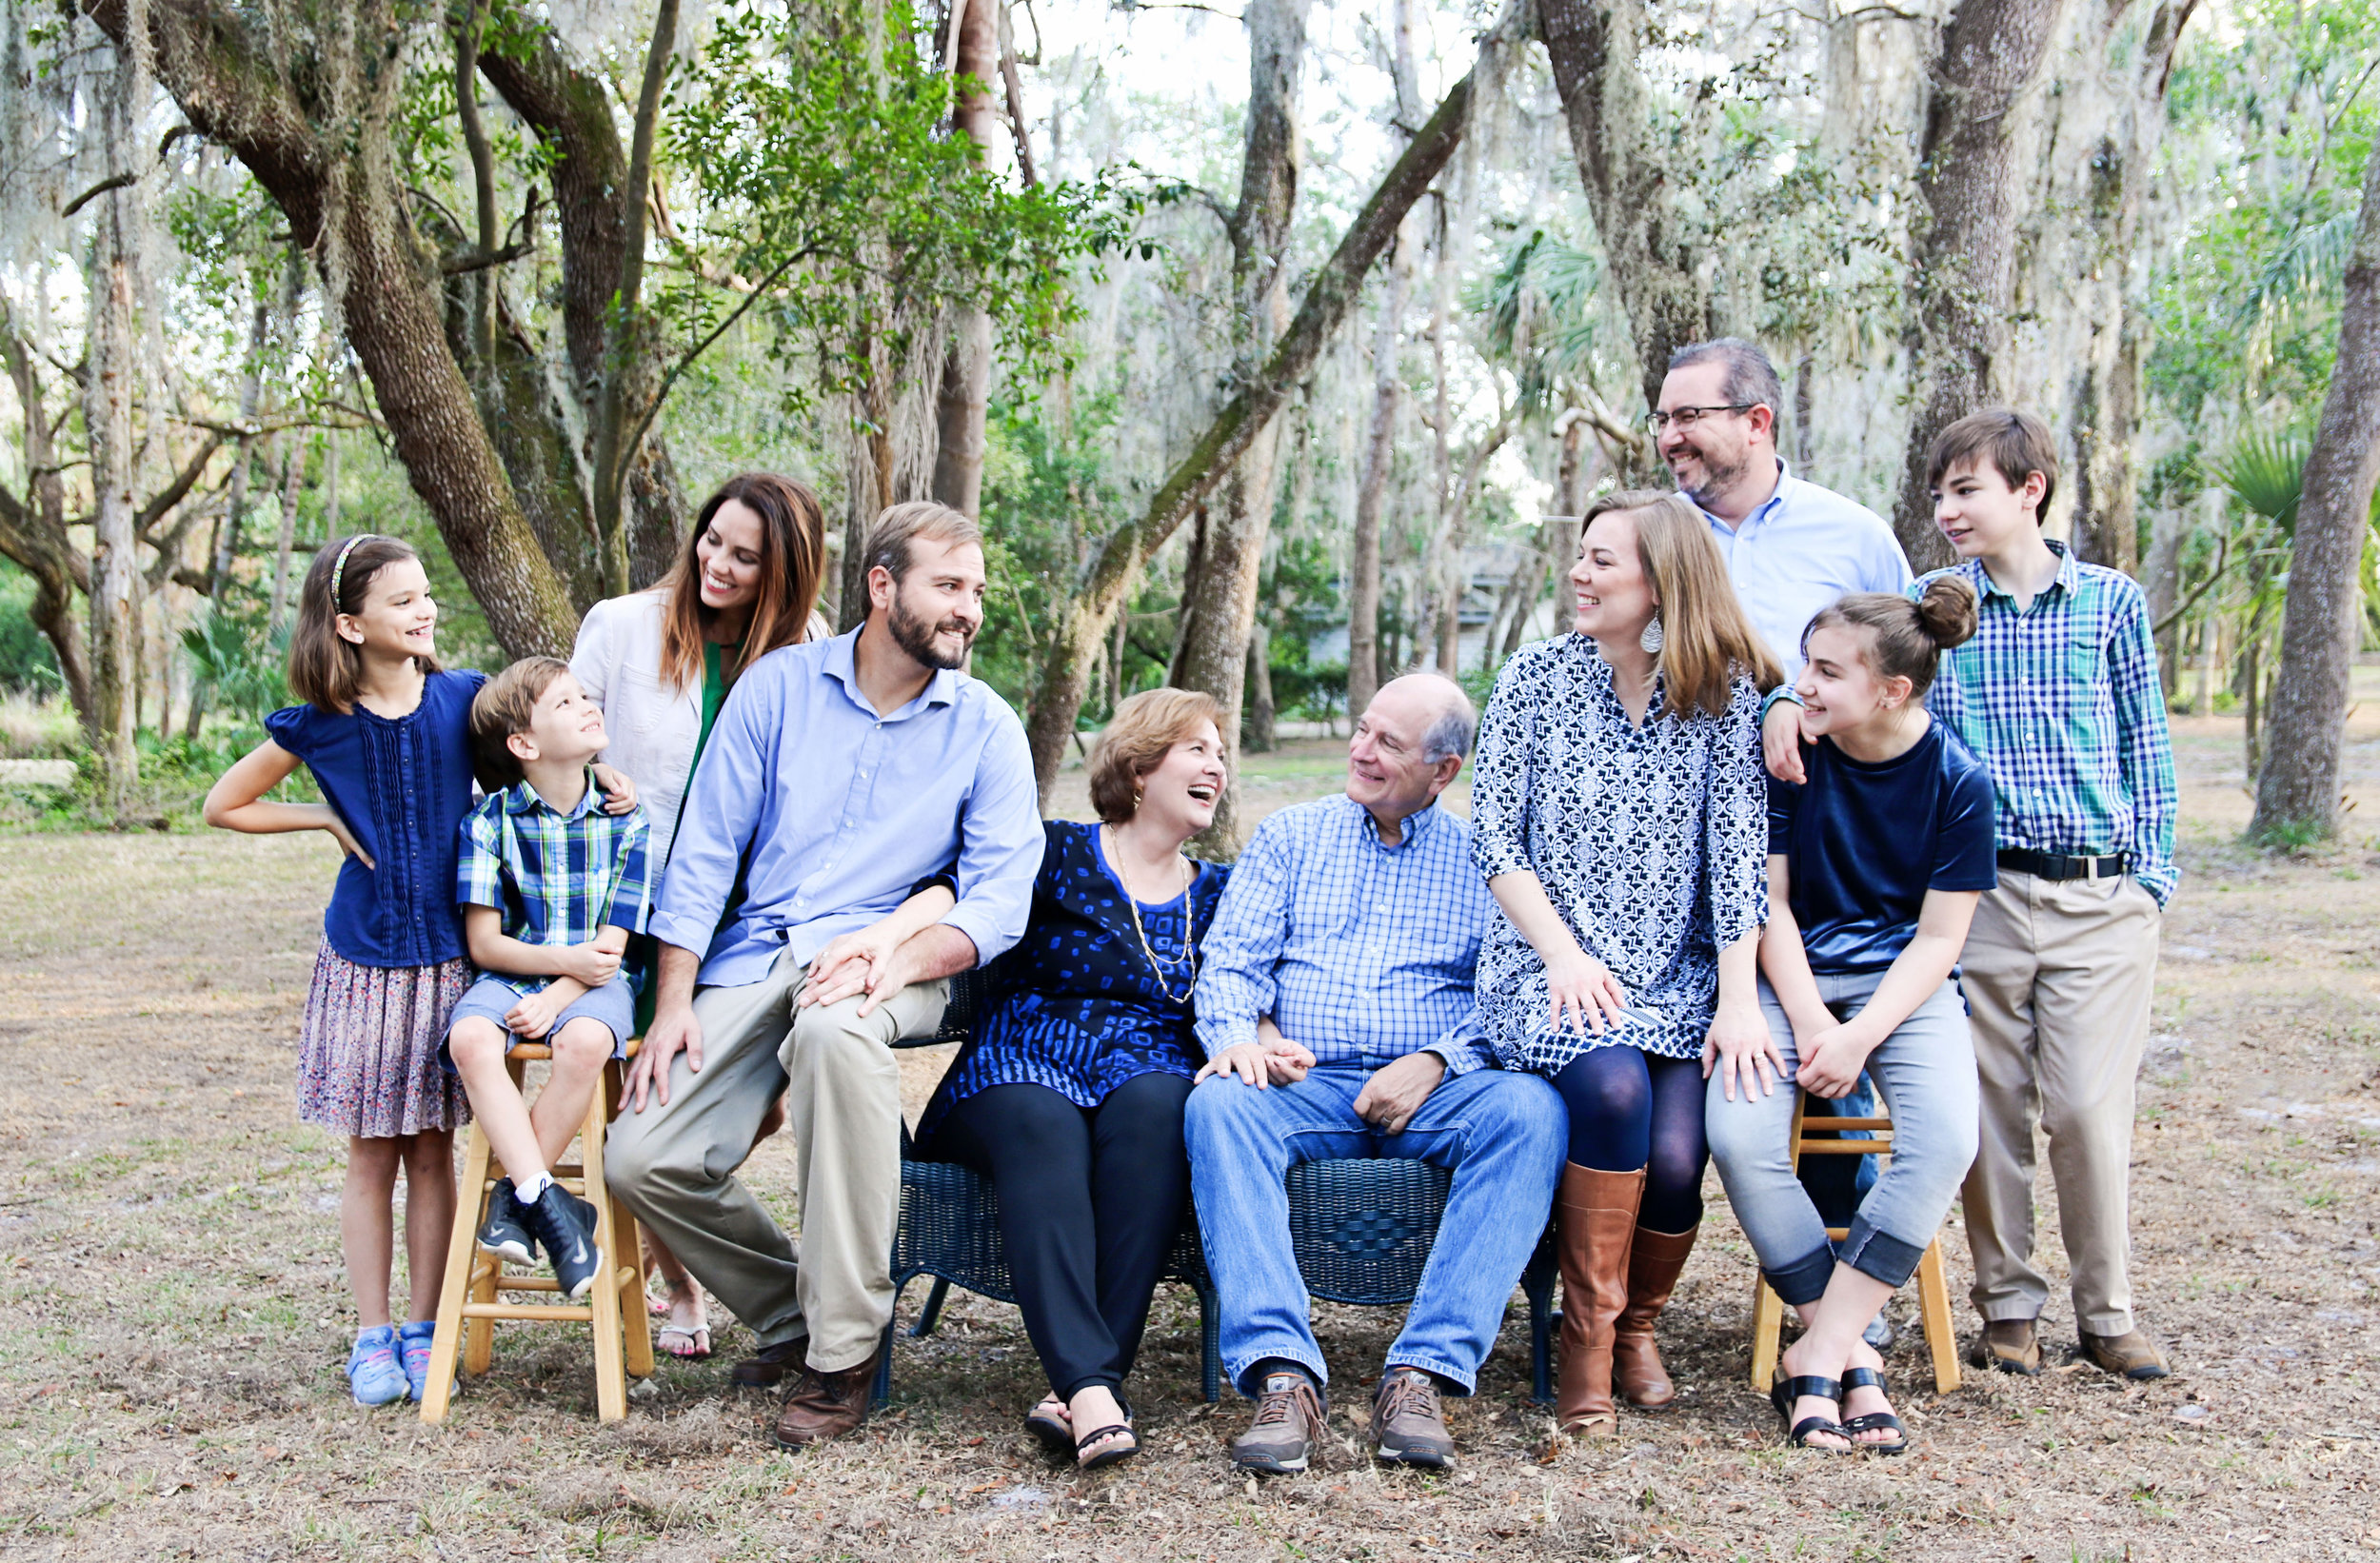 cervero gifford family-8.updated.jpg